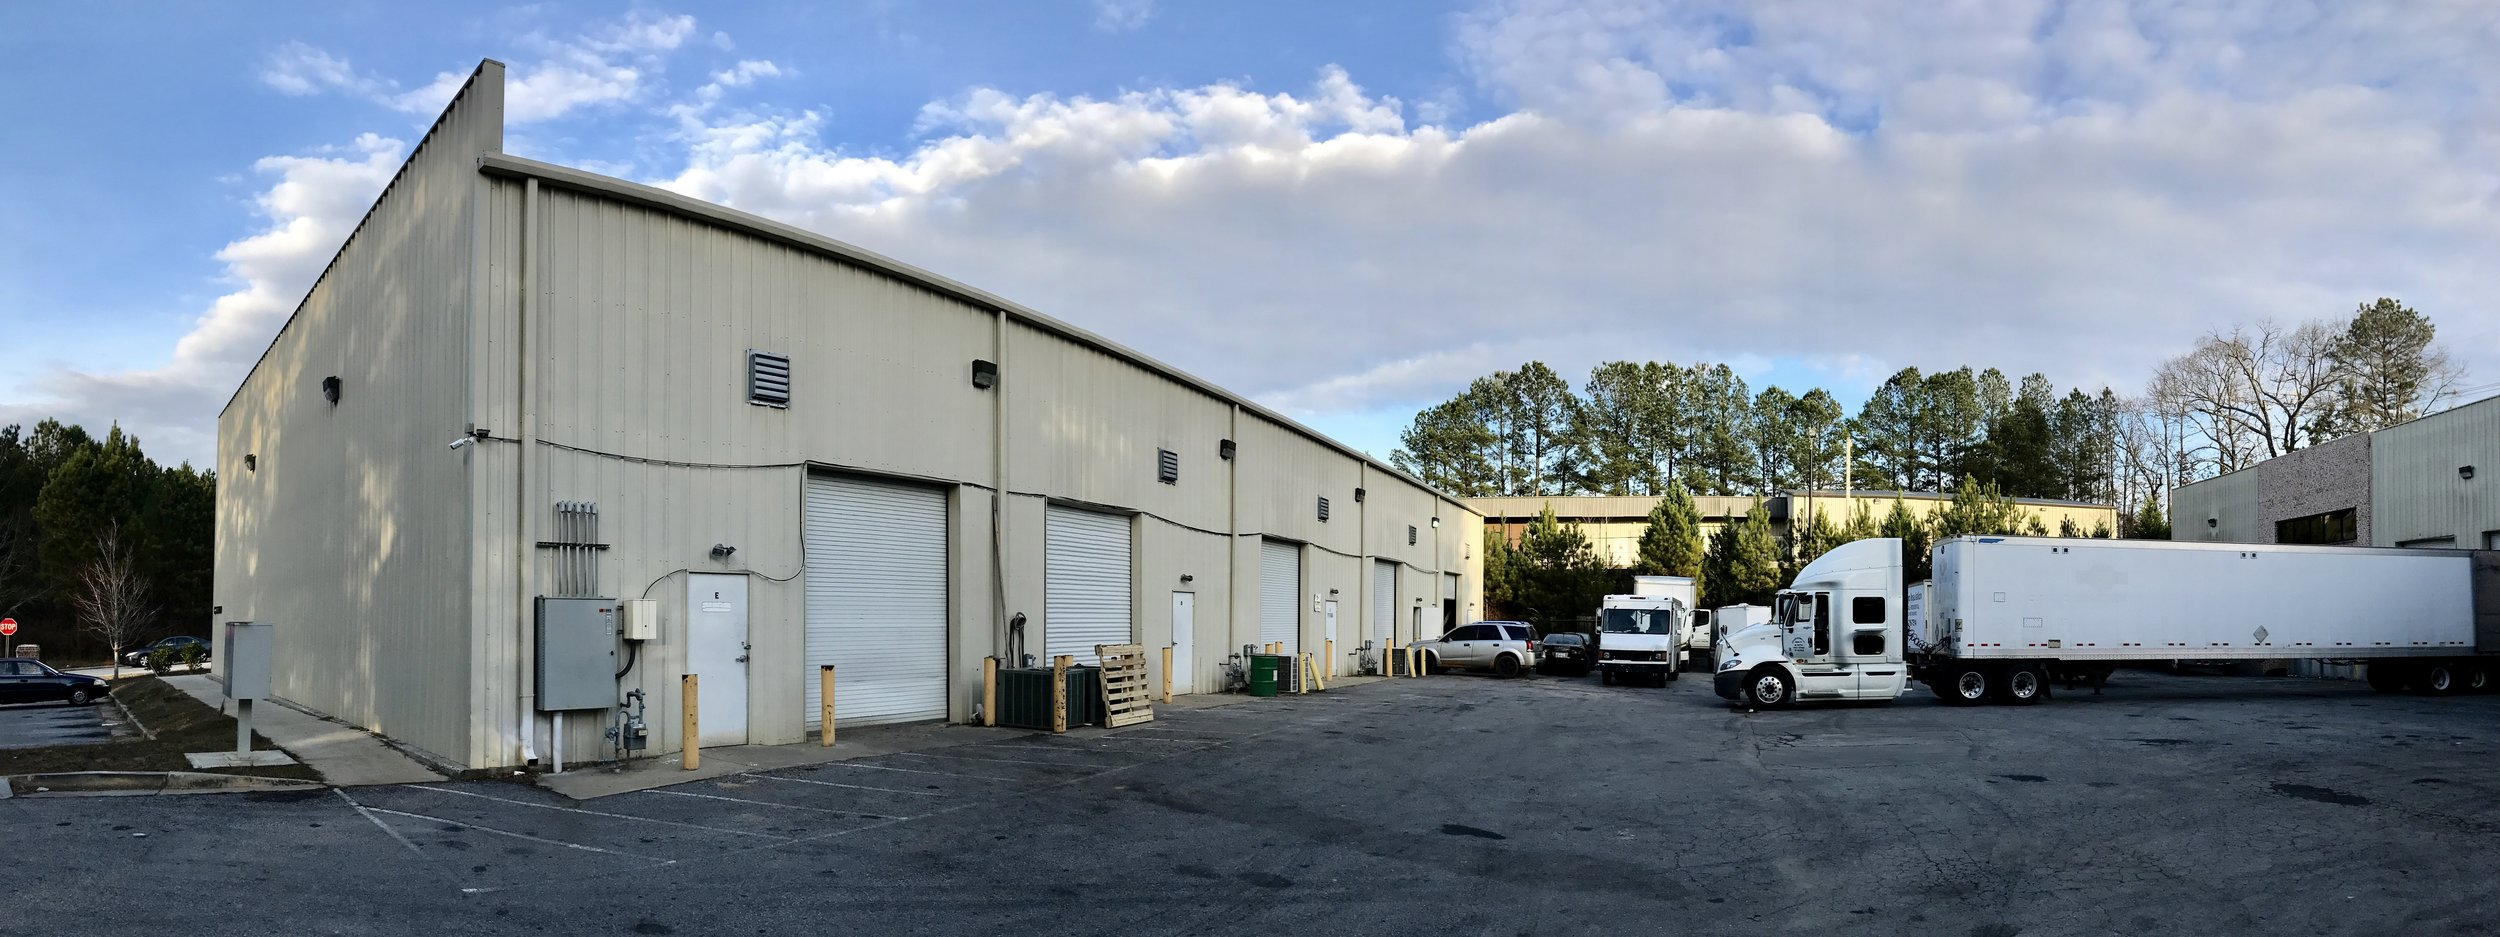 5 Roll-Up Doors on the back of each Office Warehouse Space